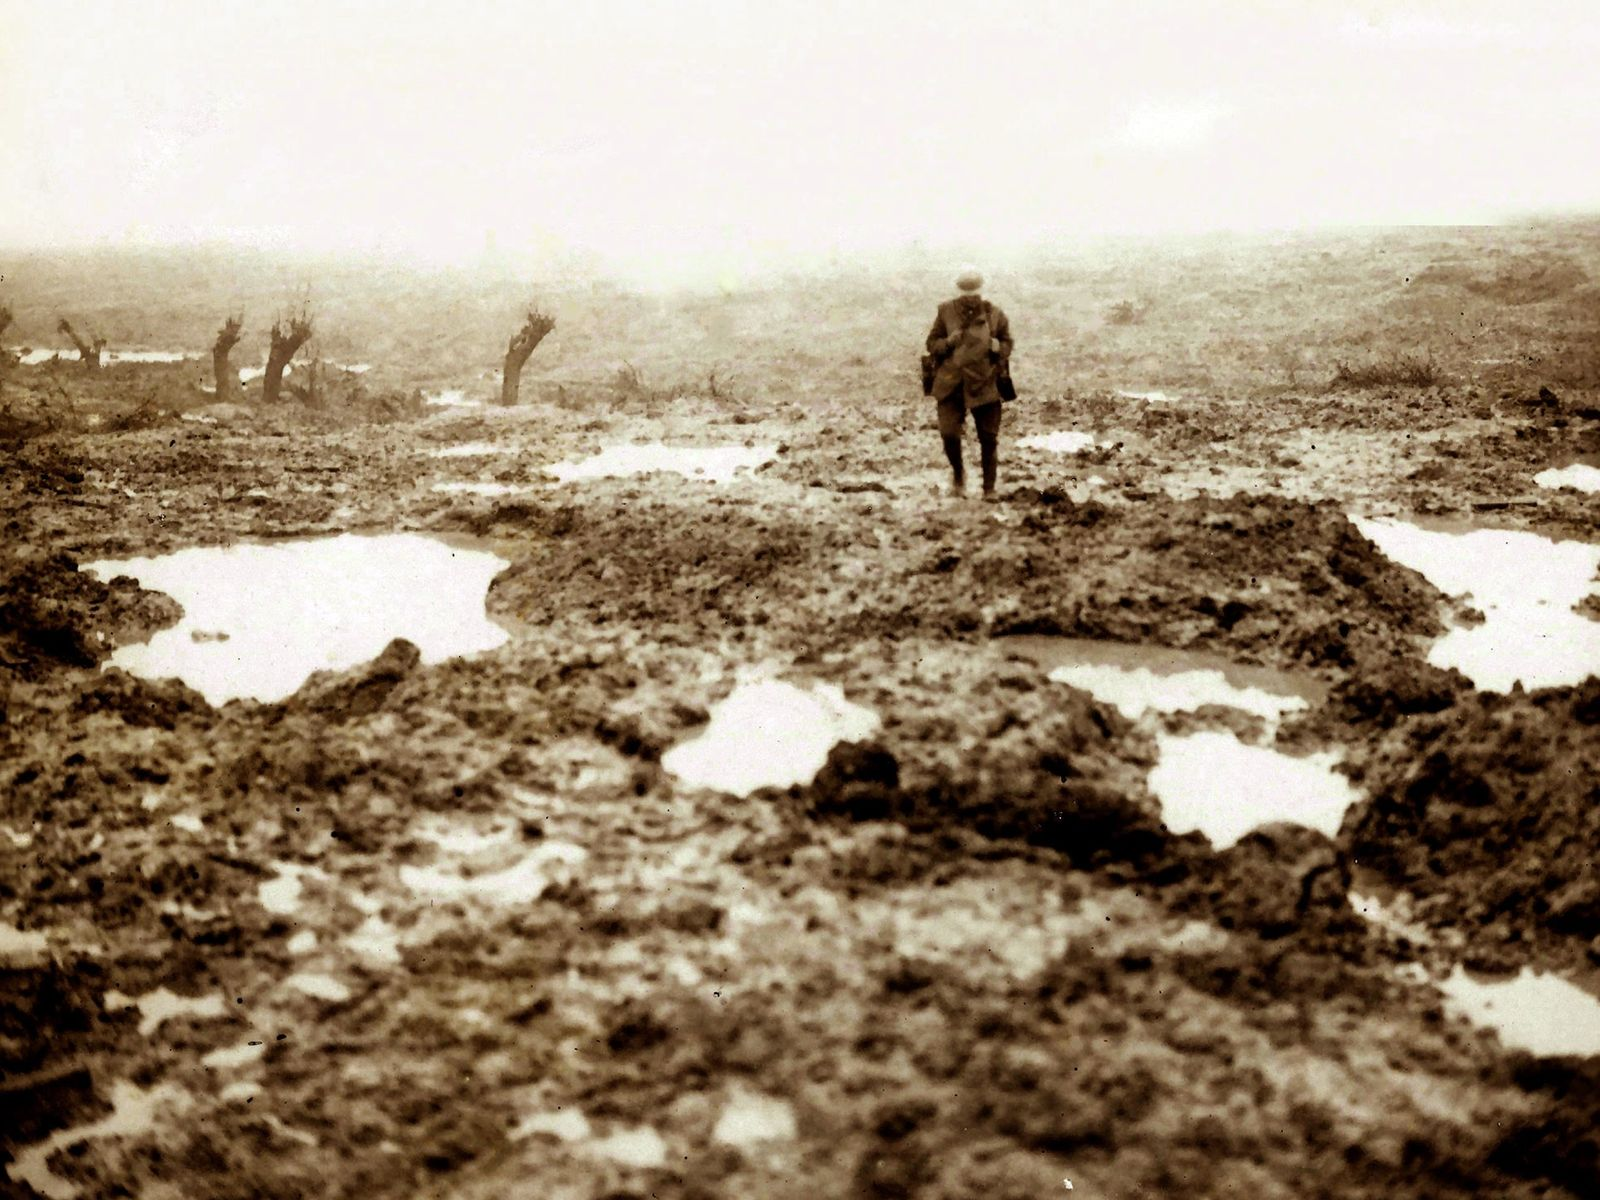 A Canadian soldier surveys the aftermath of the 1917 Battle of Passchendaele in Belgium. Hundreds of ...